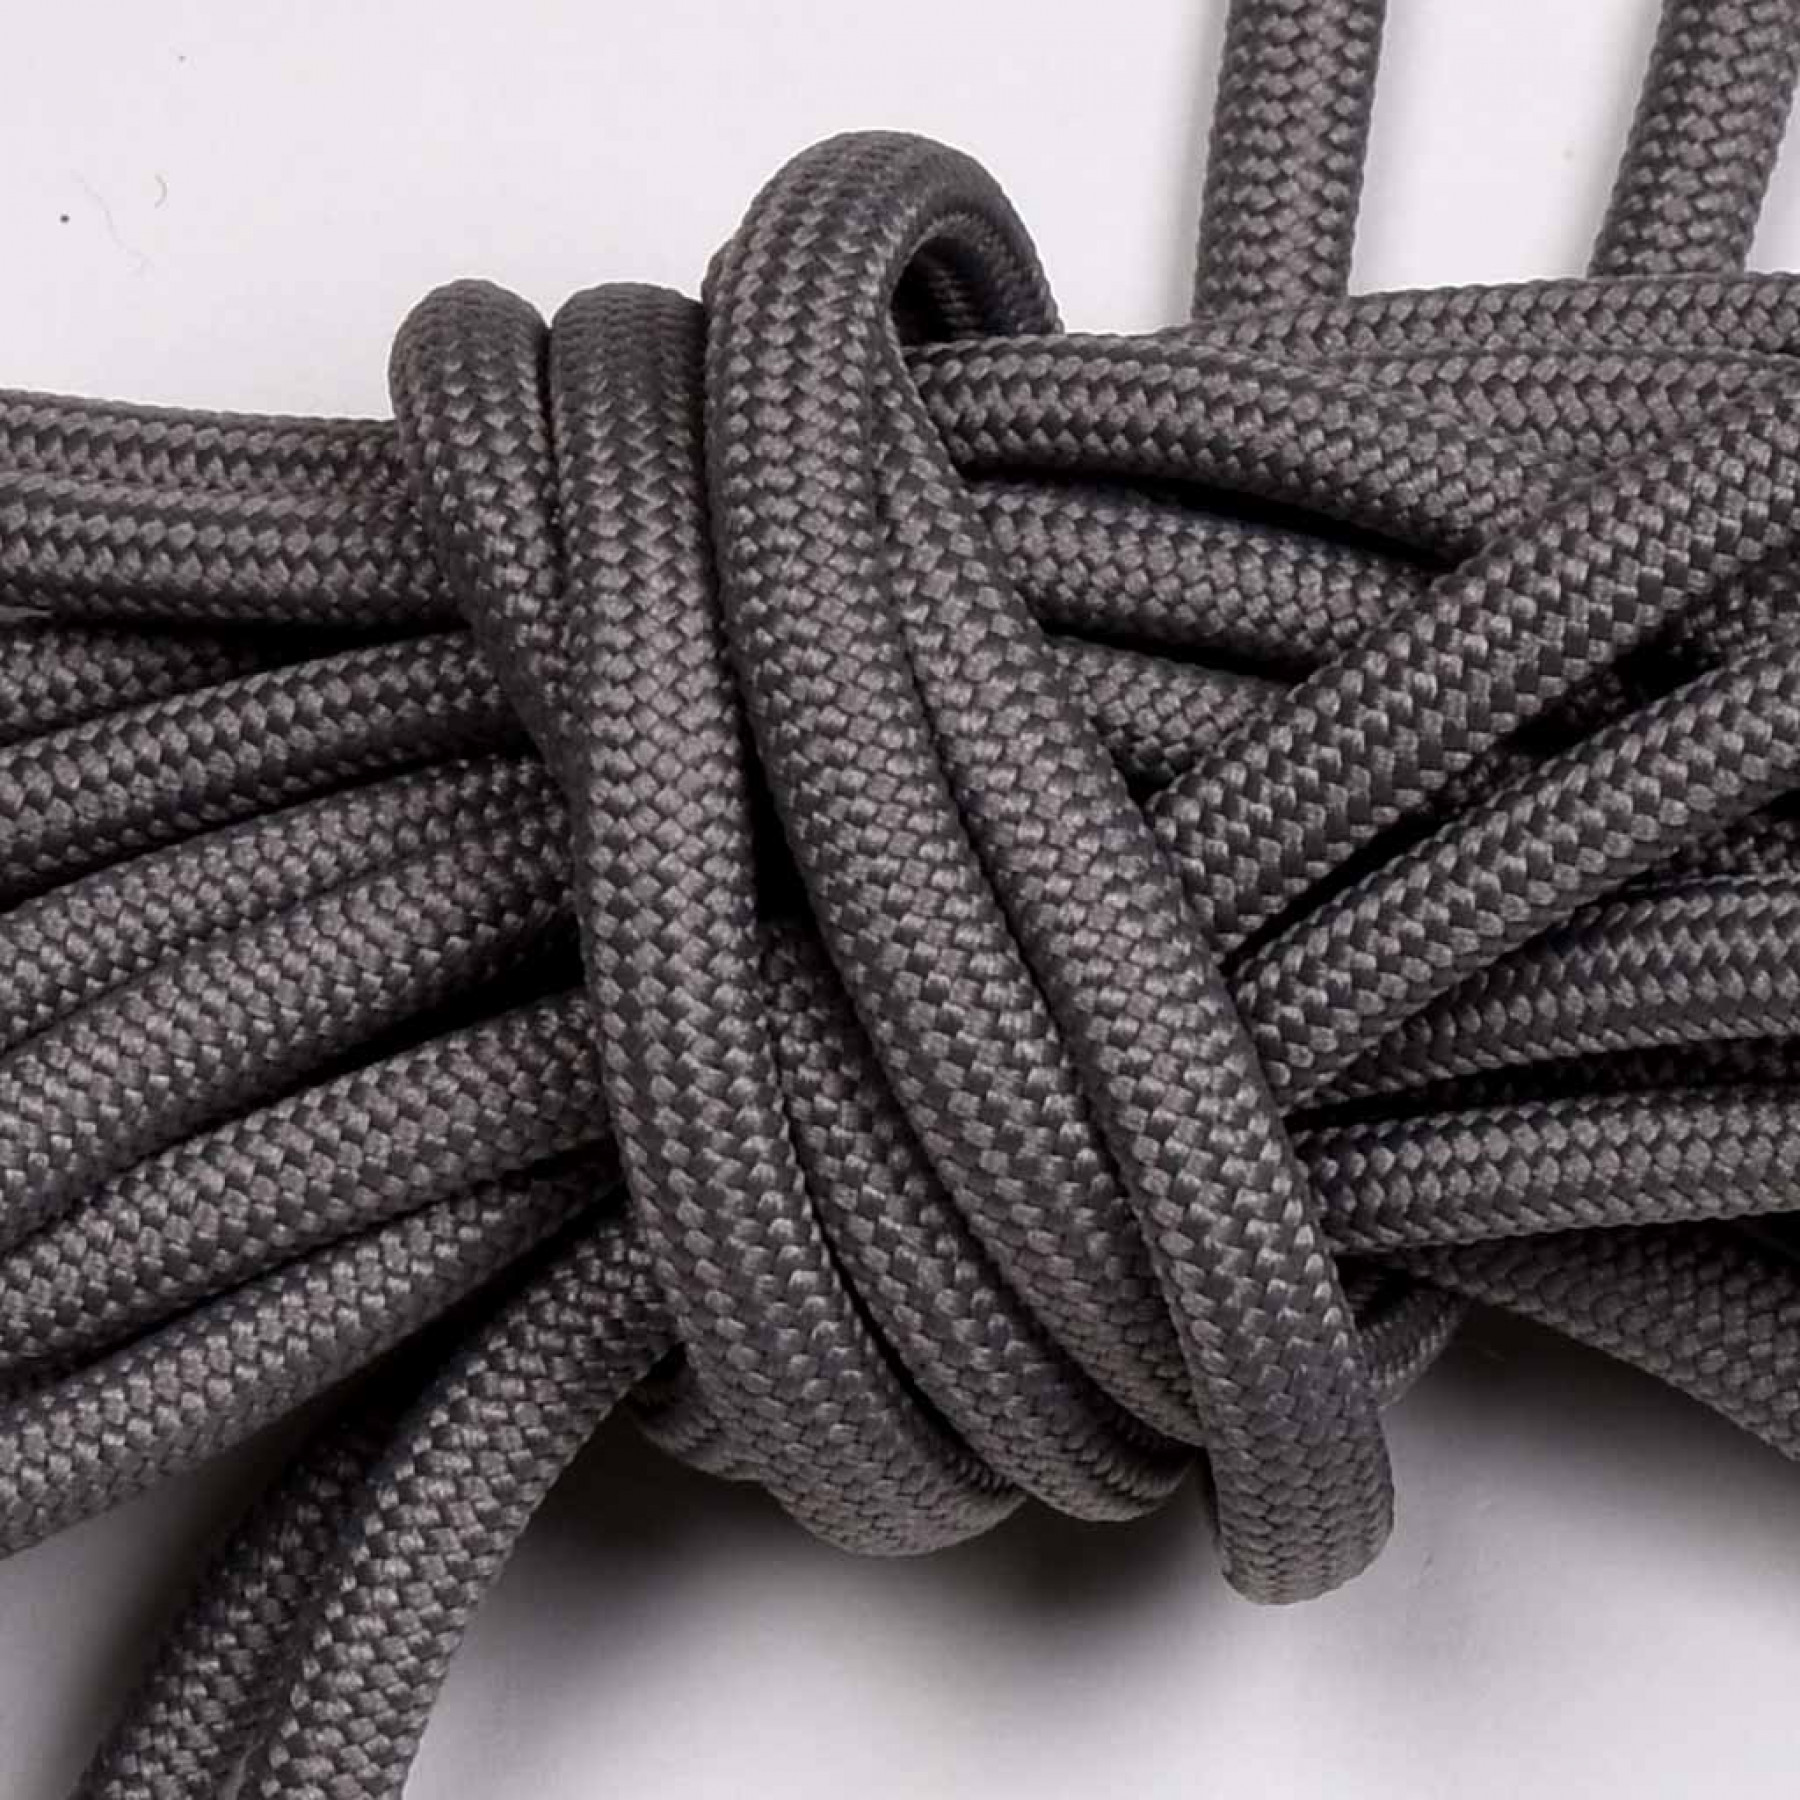 Laces, 165cm long, grey